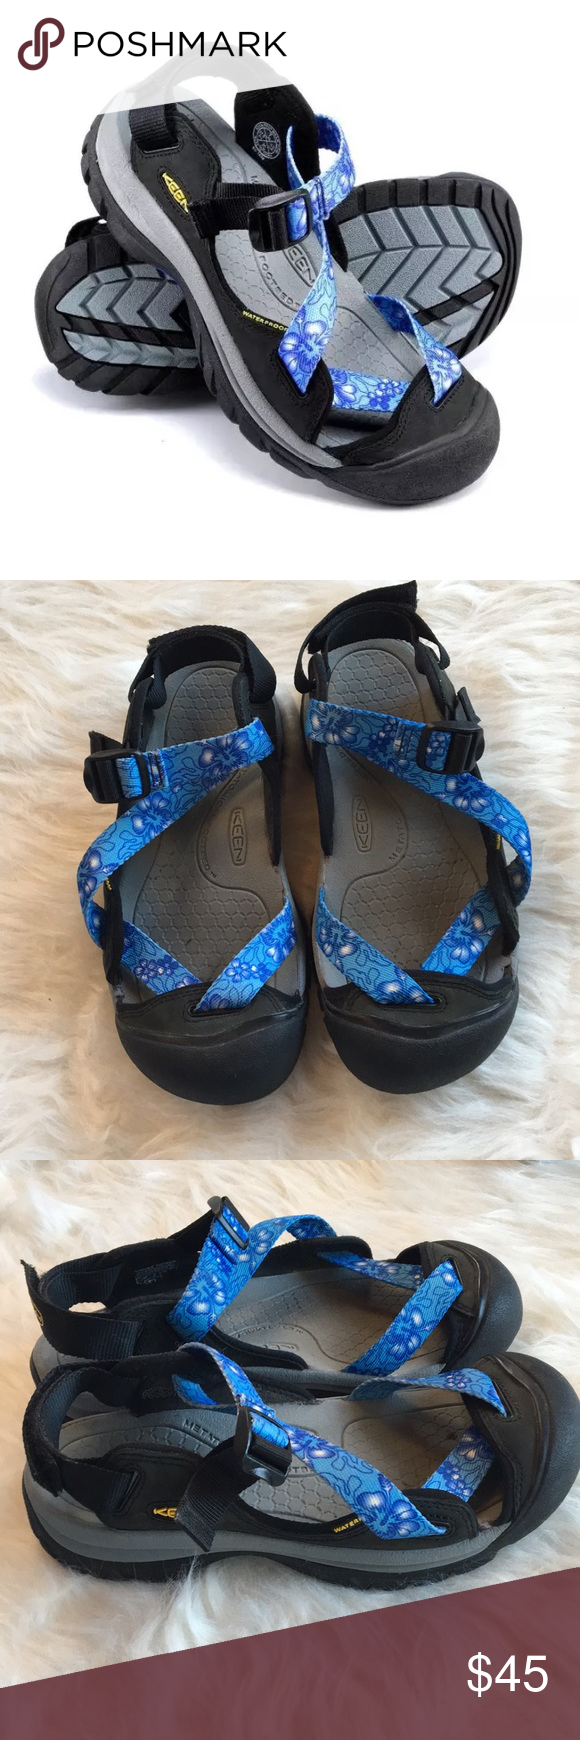 4a733fd278b8 Keen 8 zerraport sandal waterproof washable Like new with only a couple  minor signs of wear